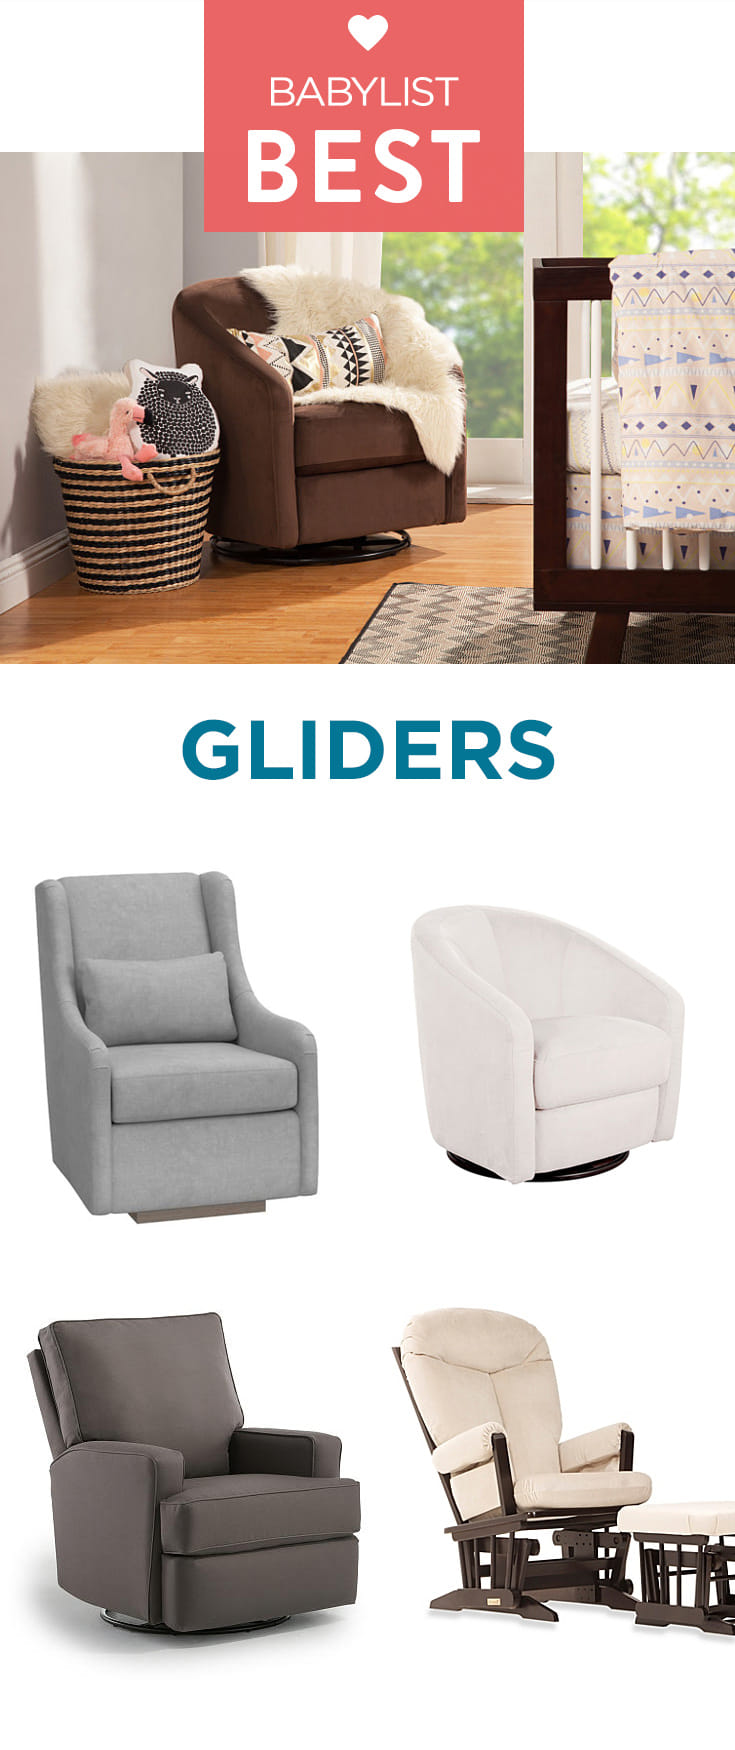 Soothe, feed and snuggle: a glider can be a useful (and stylish) addition to any nursery.